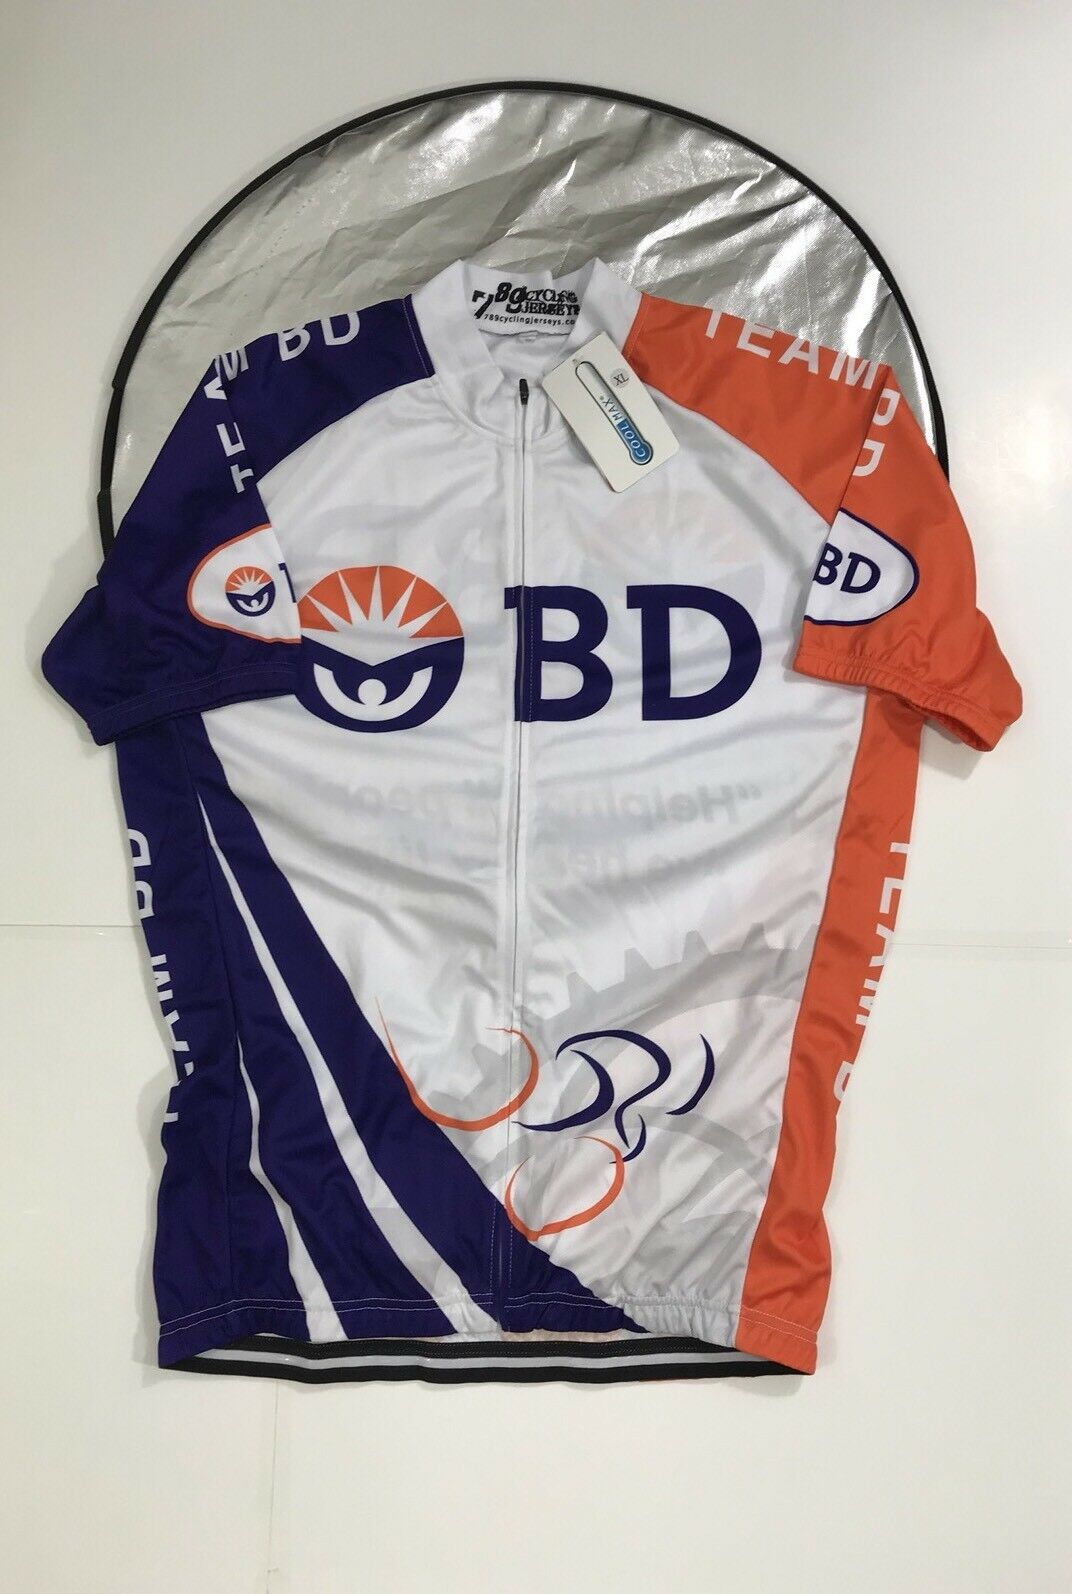 789 Cyling jersey BD   helping all people live healthy  Jersey size XL  buy discounts